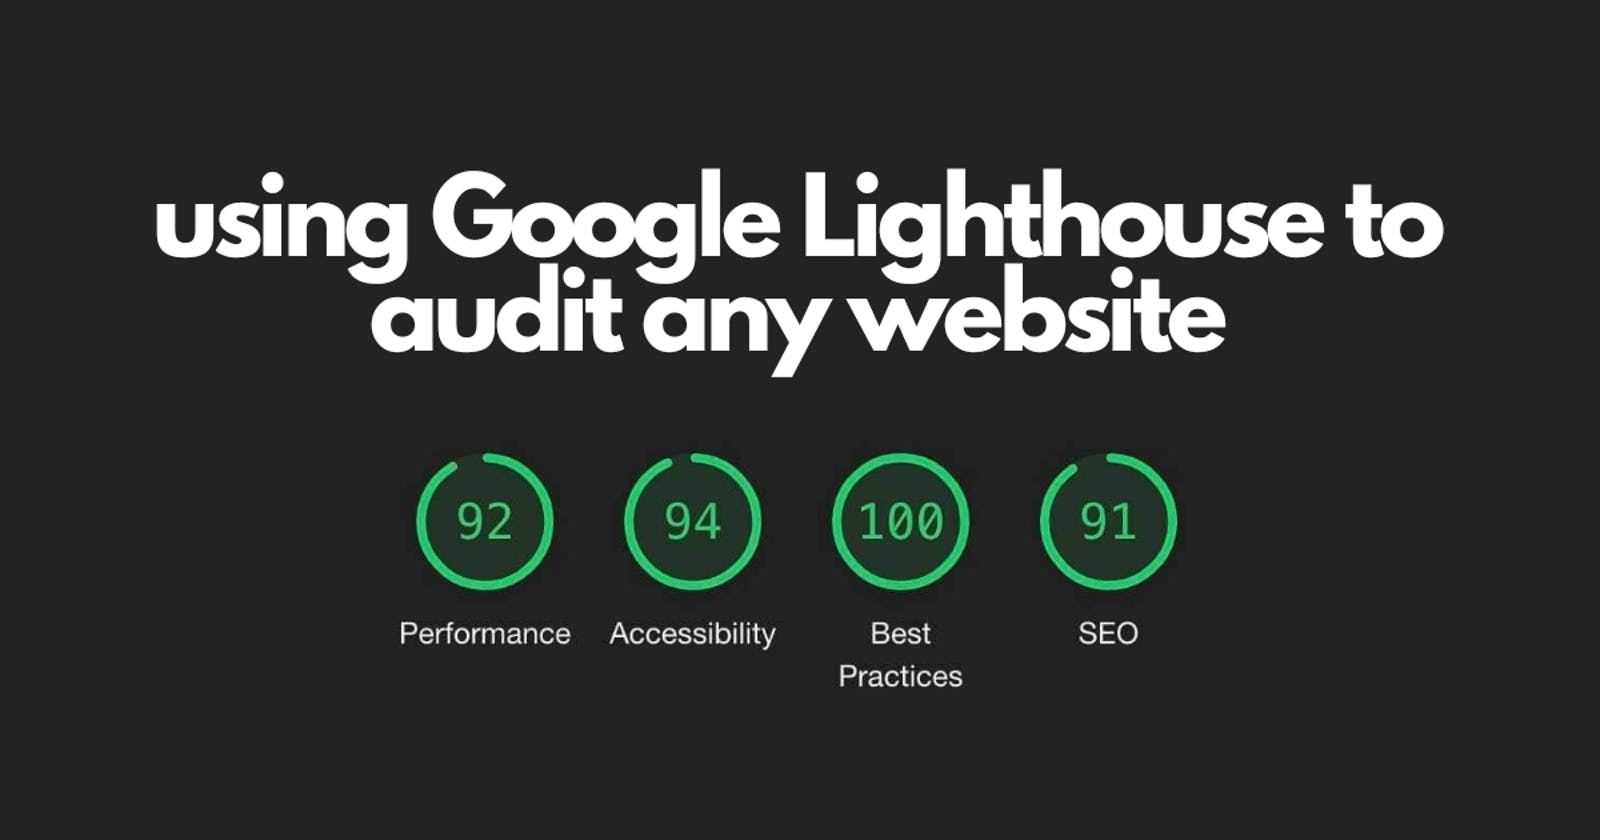 Using Google Lighthouse to audit any website